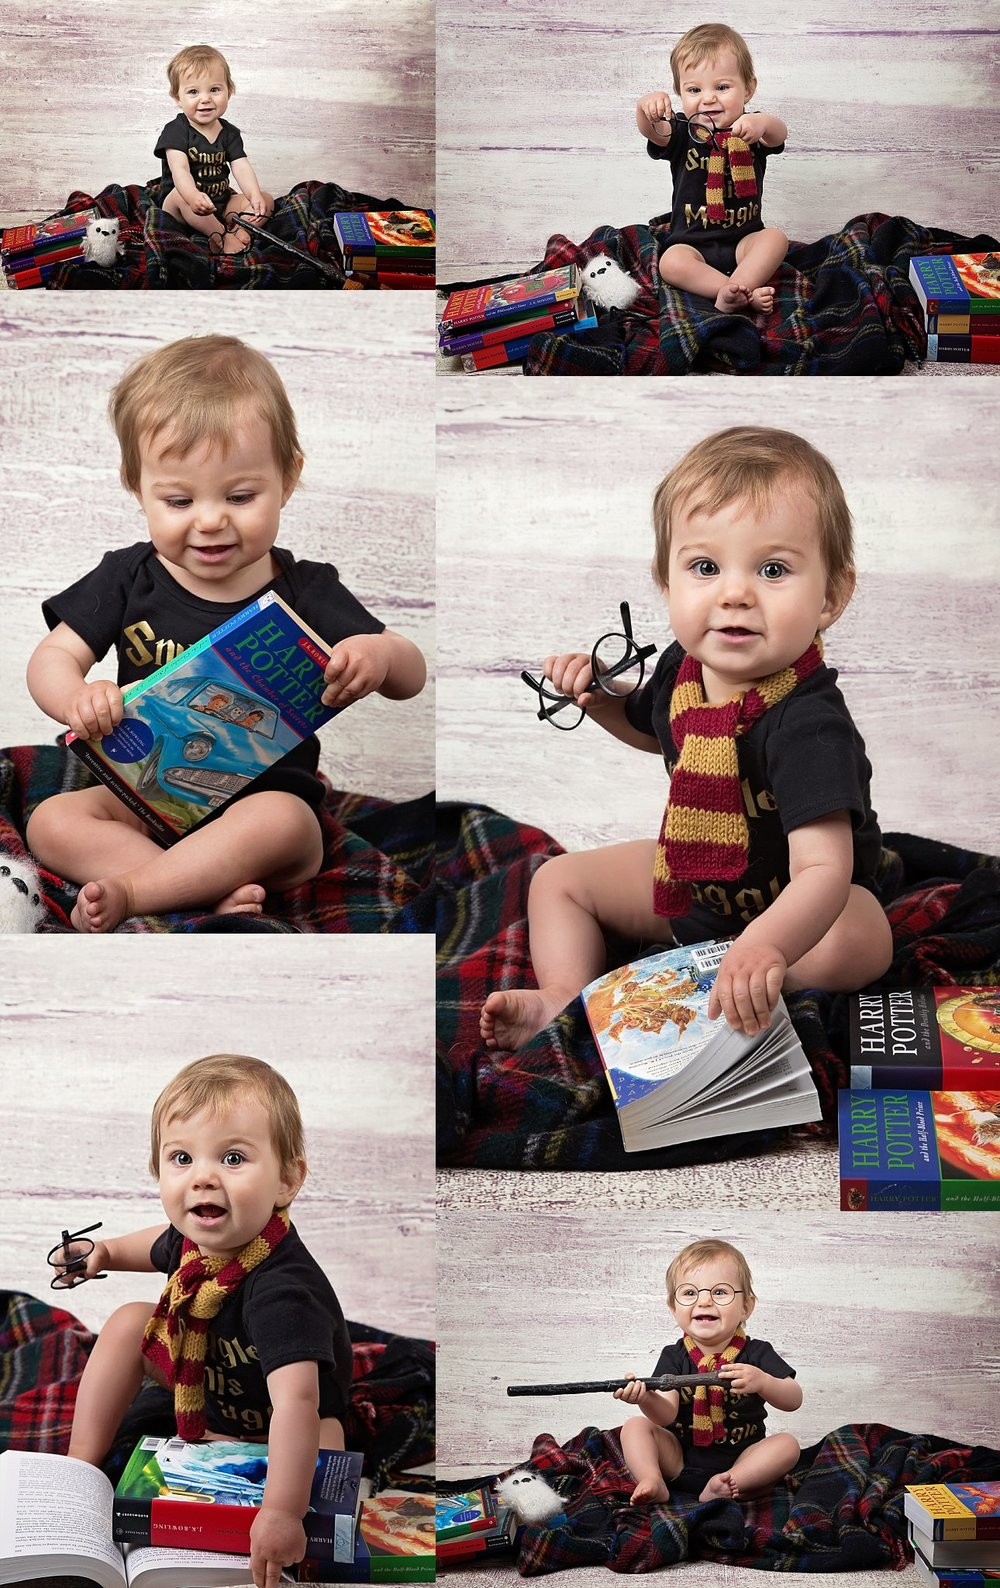 Harry Potter themed photos for little girls first birthday pictures by baby photographer Suzie Broadbent in Calgary, Alberta